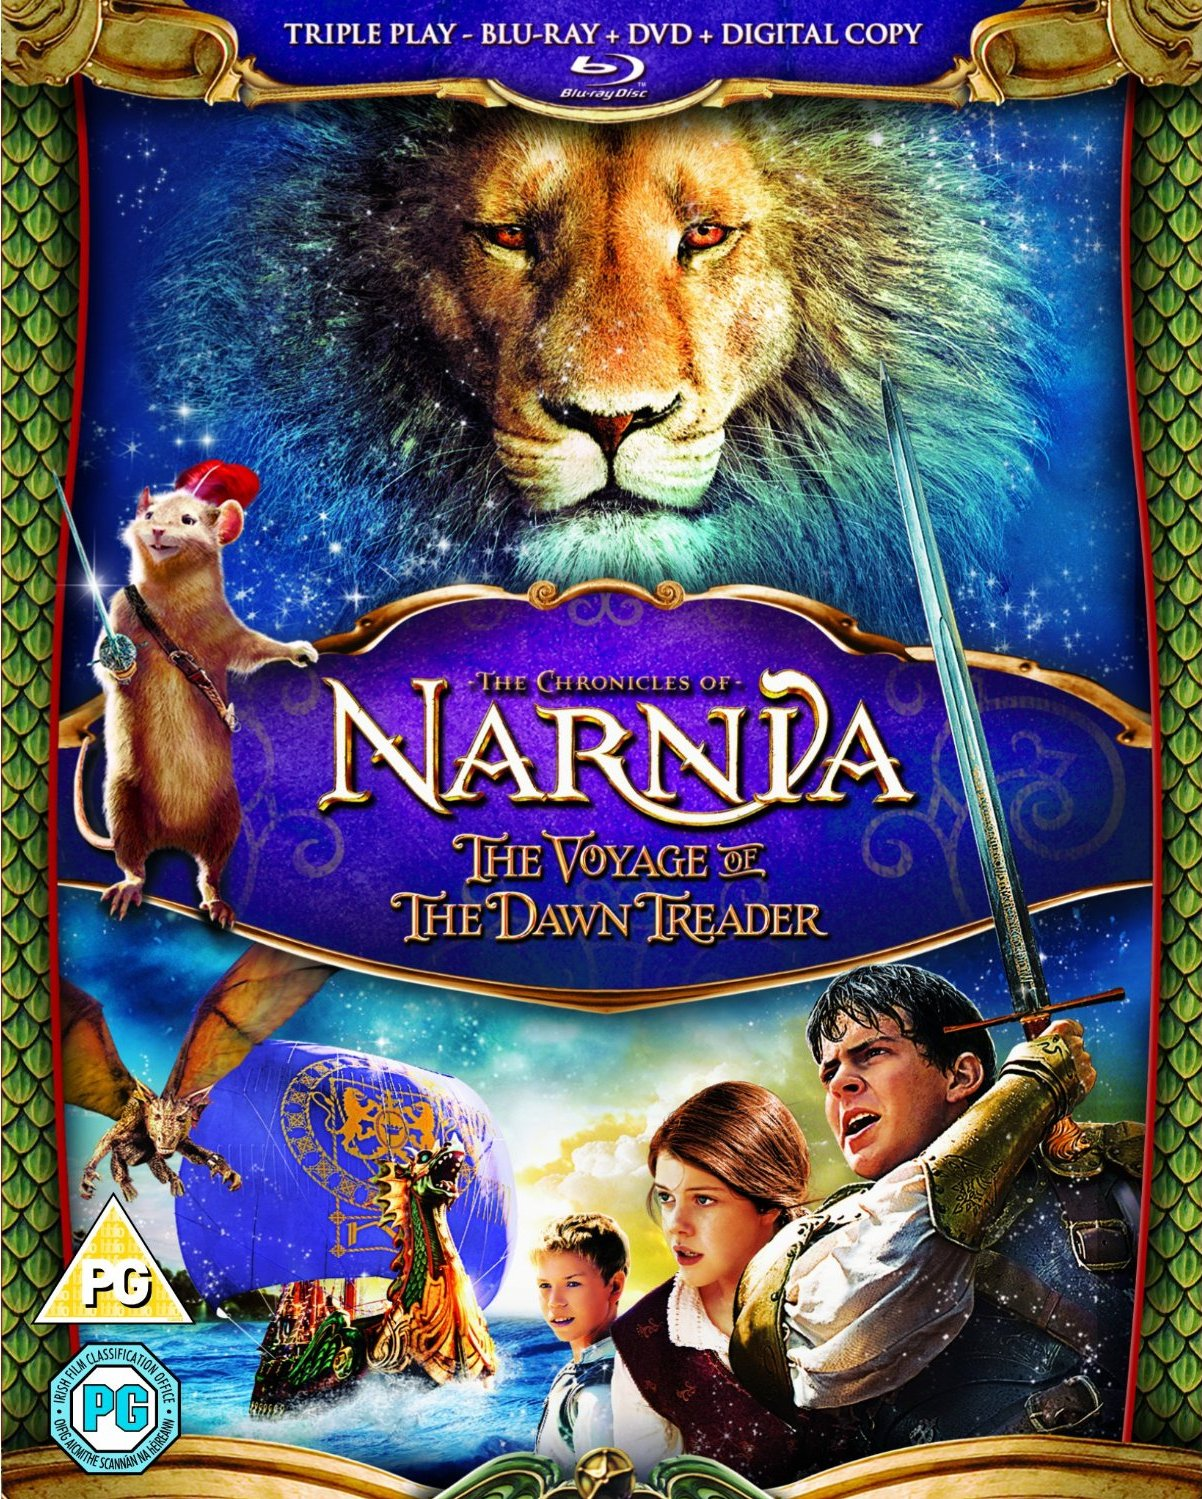 The narnia covers book 4 the silver chair - Fans In The